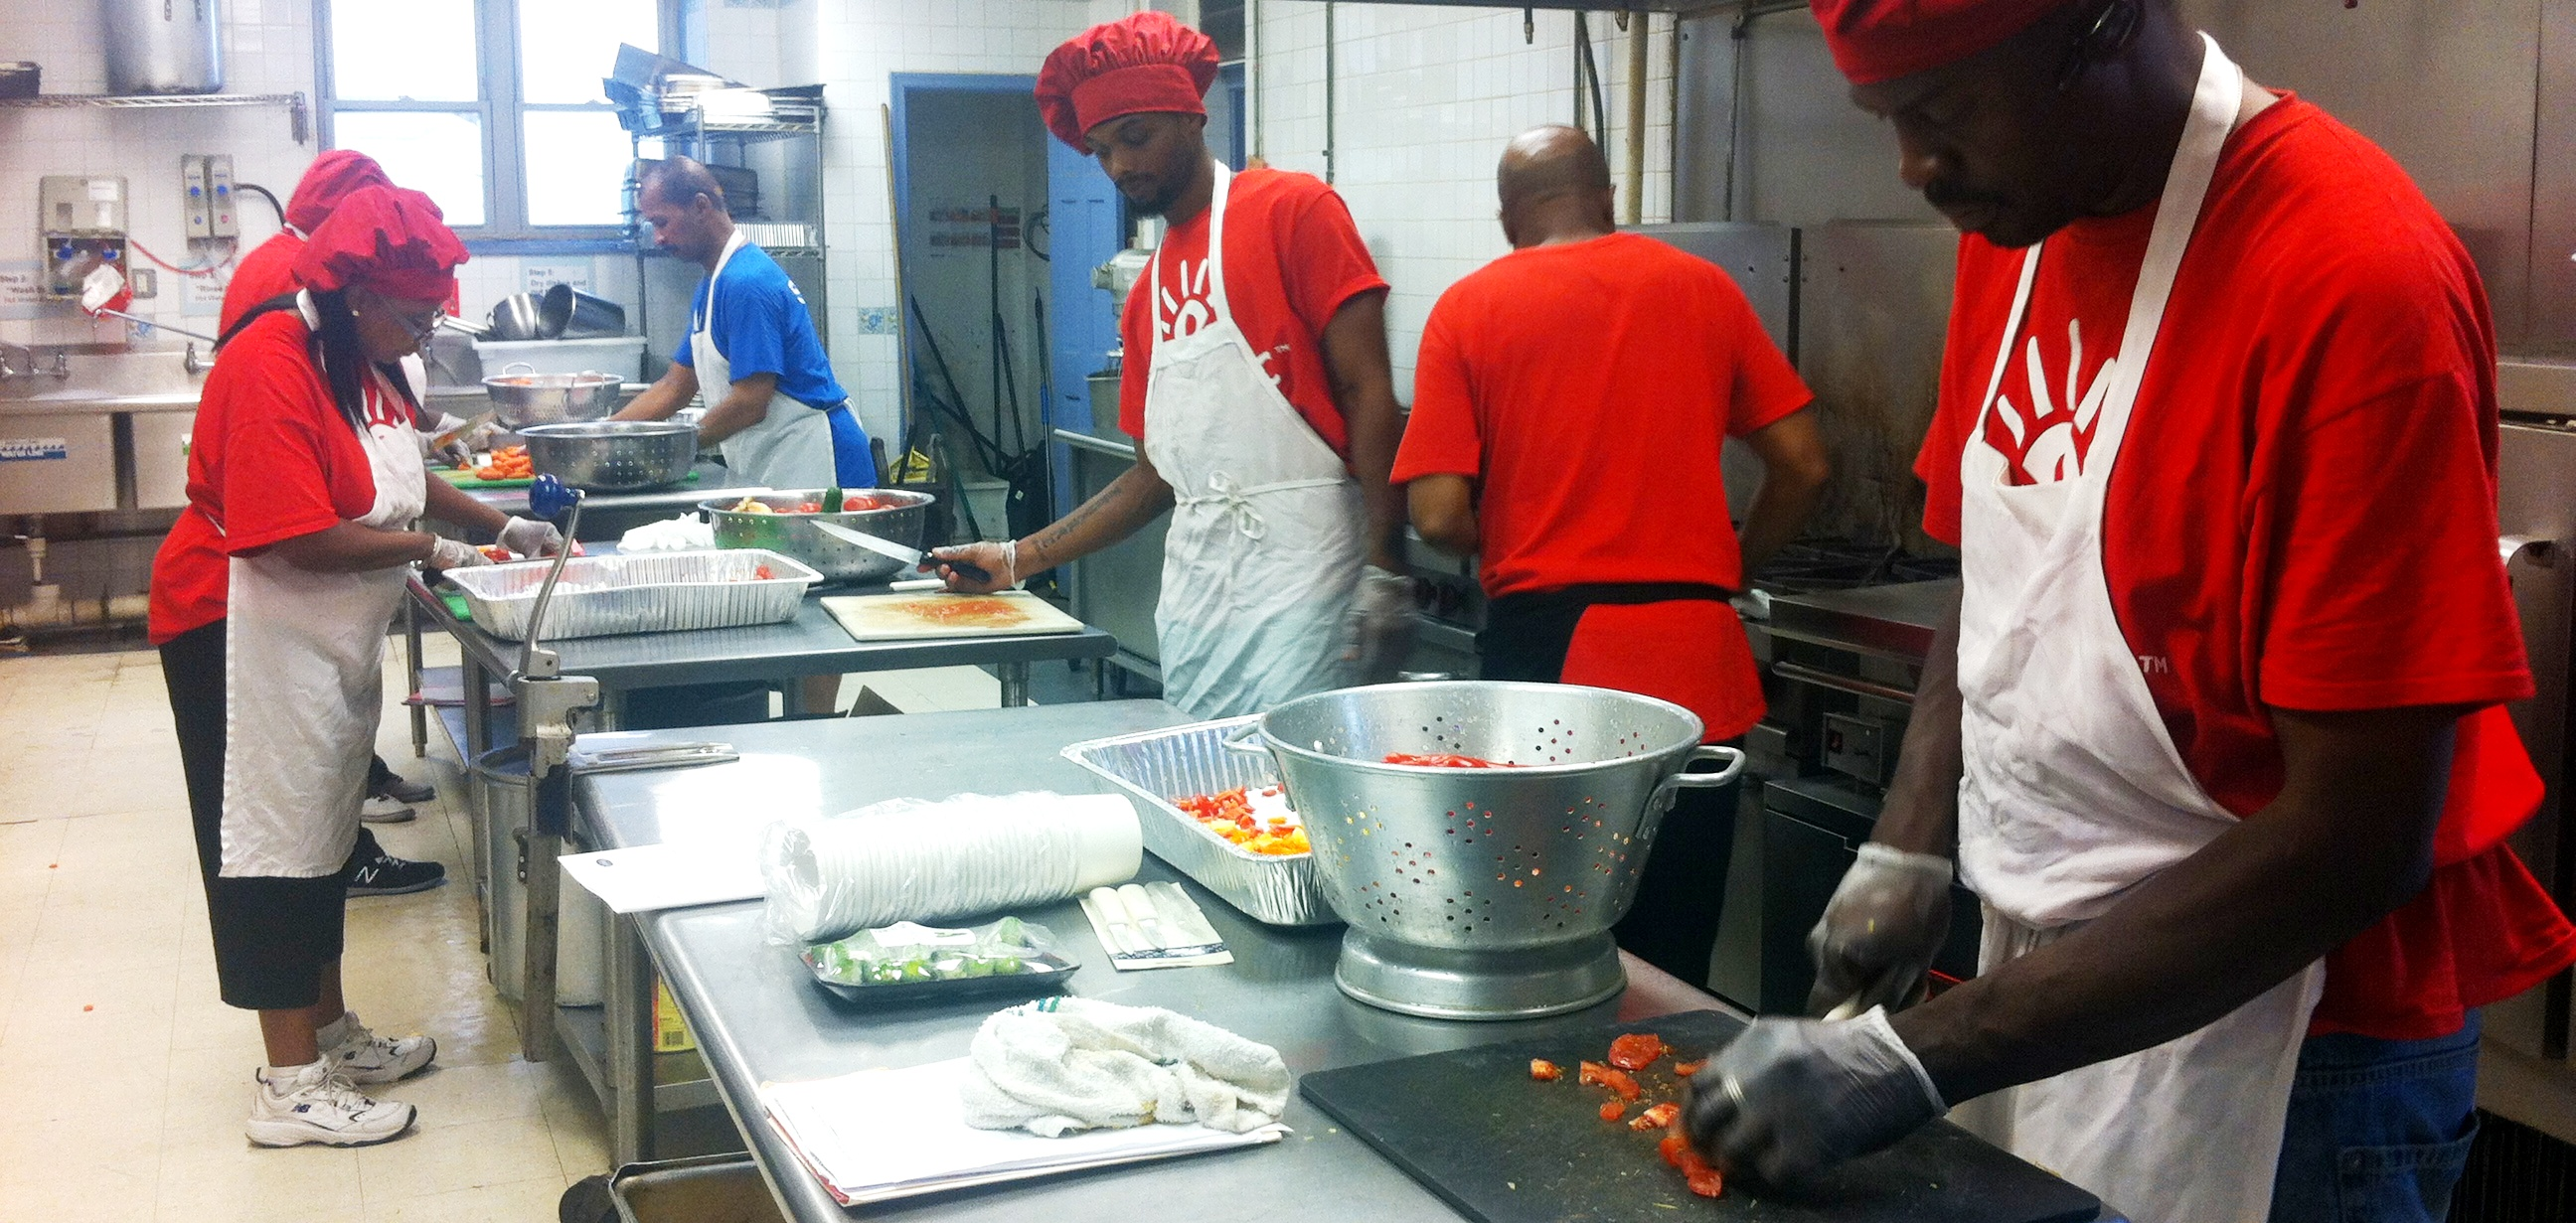 Employment Trainees in the Kitchen